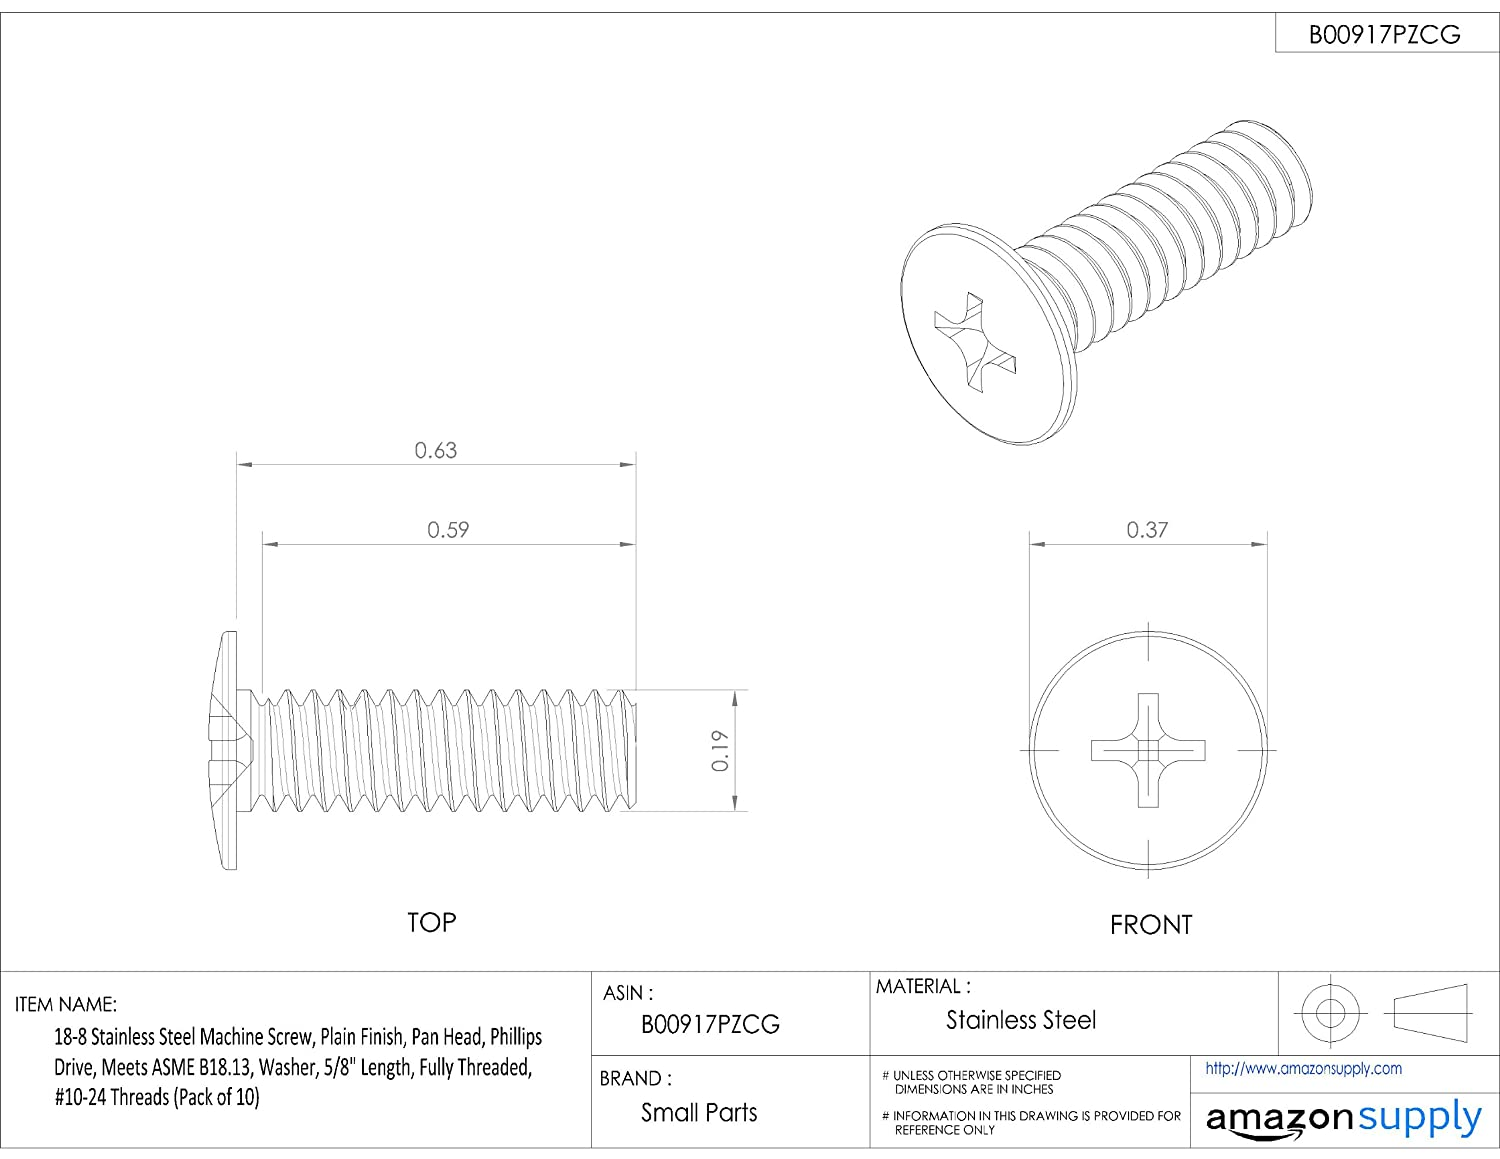 Phillips Drive 18-8 Stainless Steel Machine Screw Meets ASME B18.13 Fully Threaded External-Tooth Lock Washer Pan Head 5//8 Length #10-24 UNC Threads Plain Finish Pack of 10